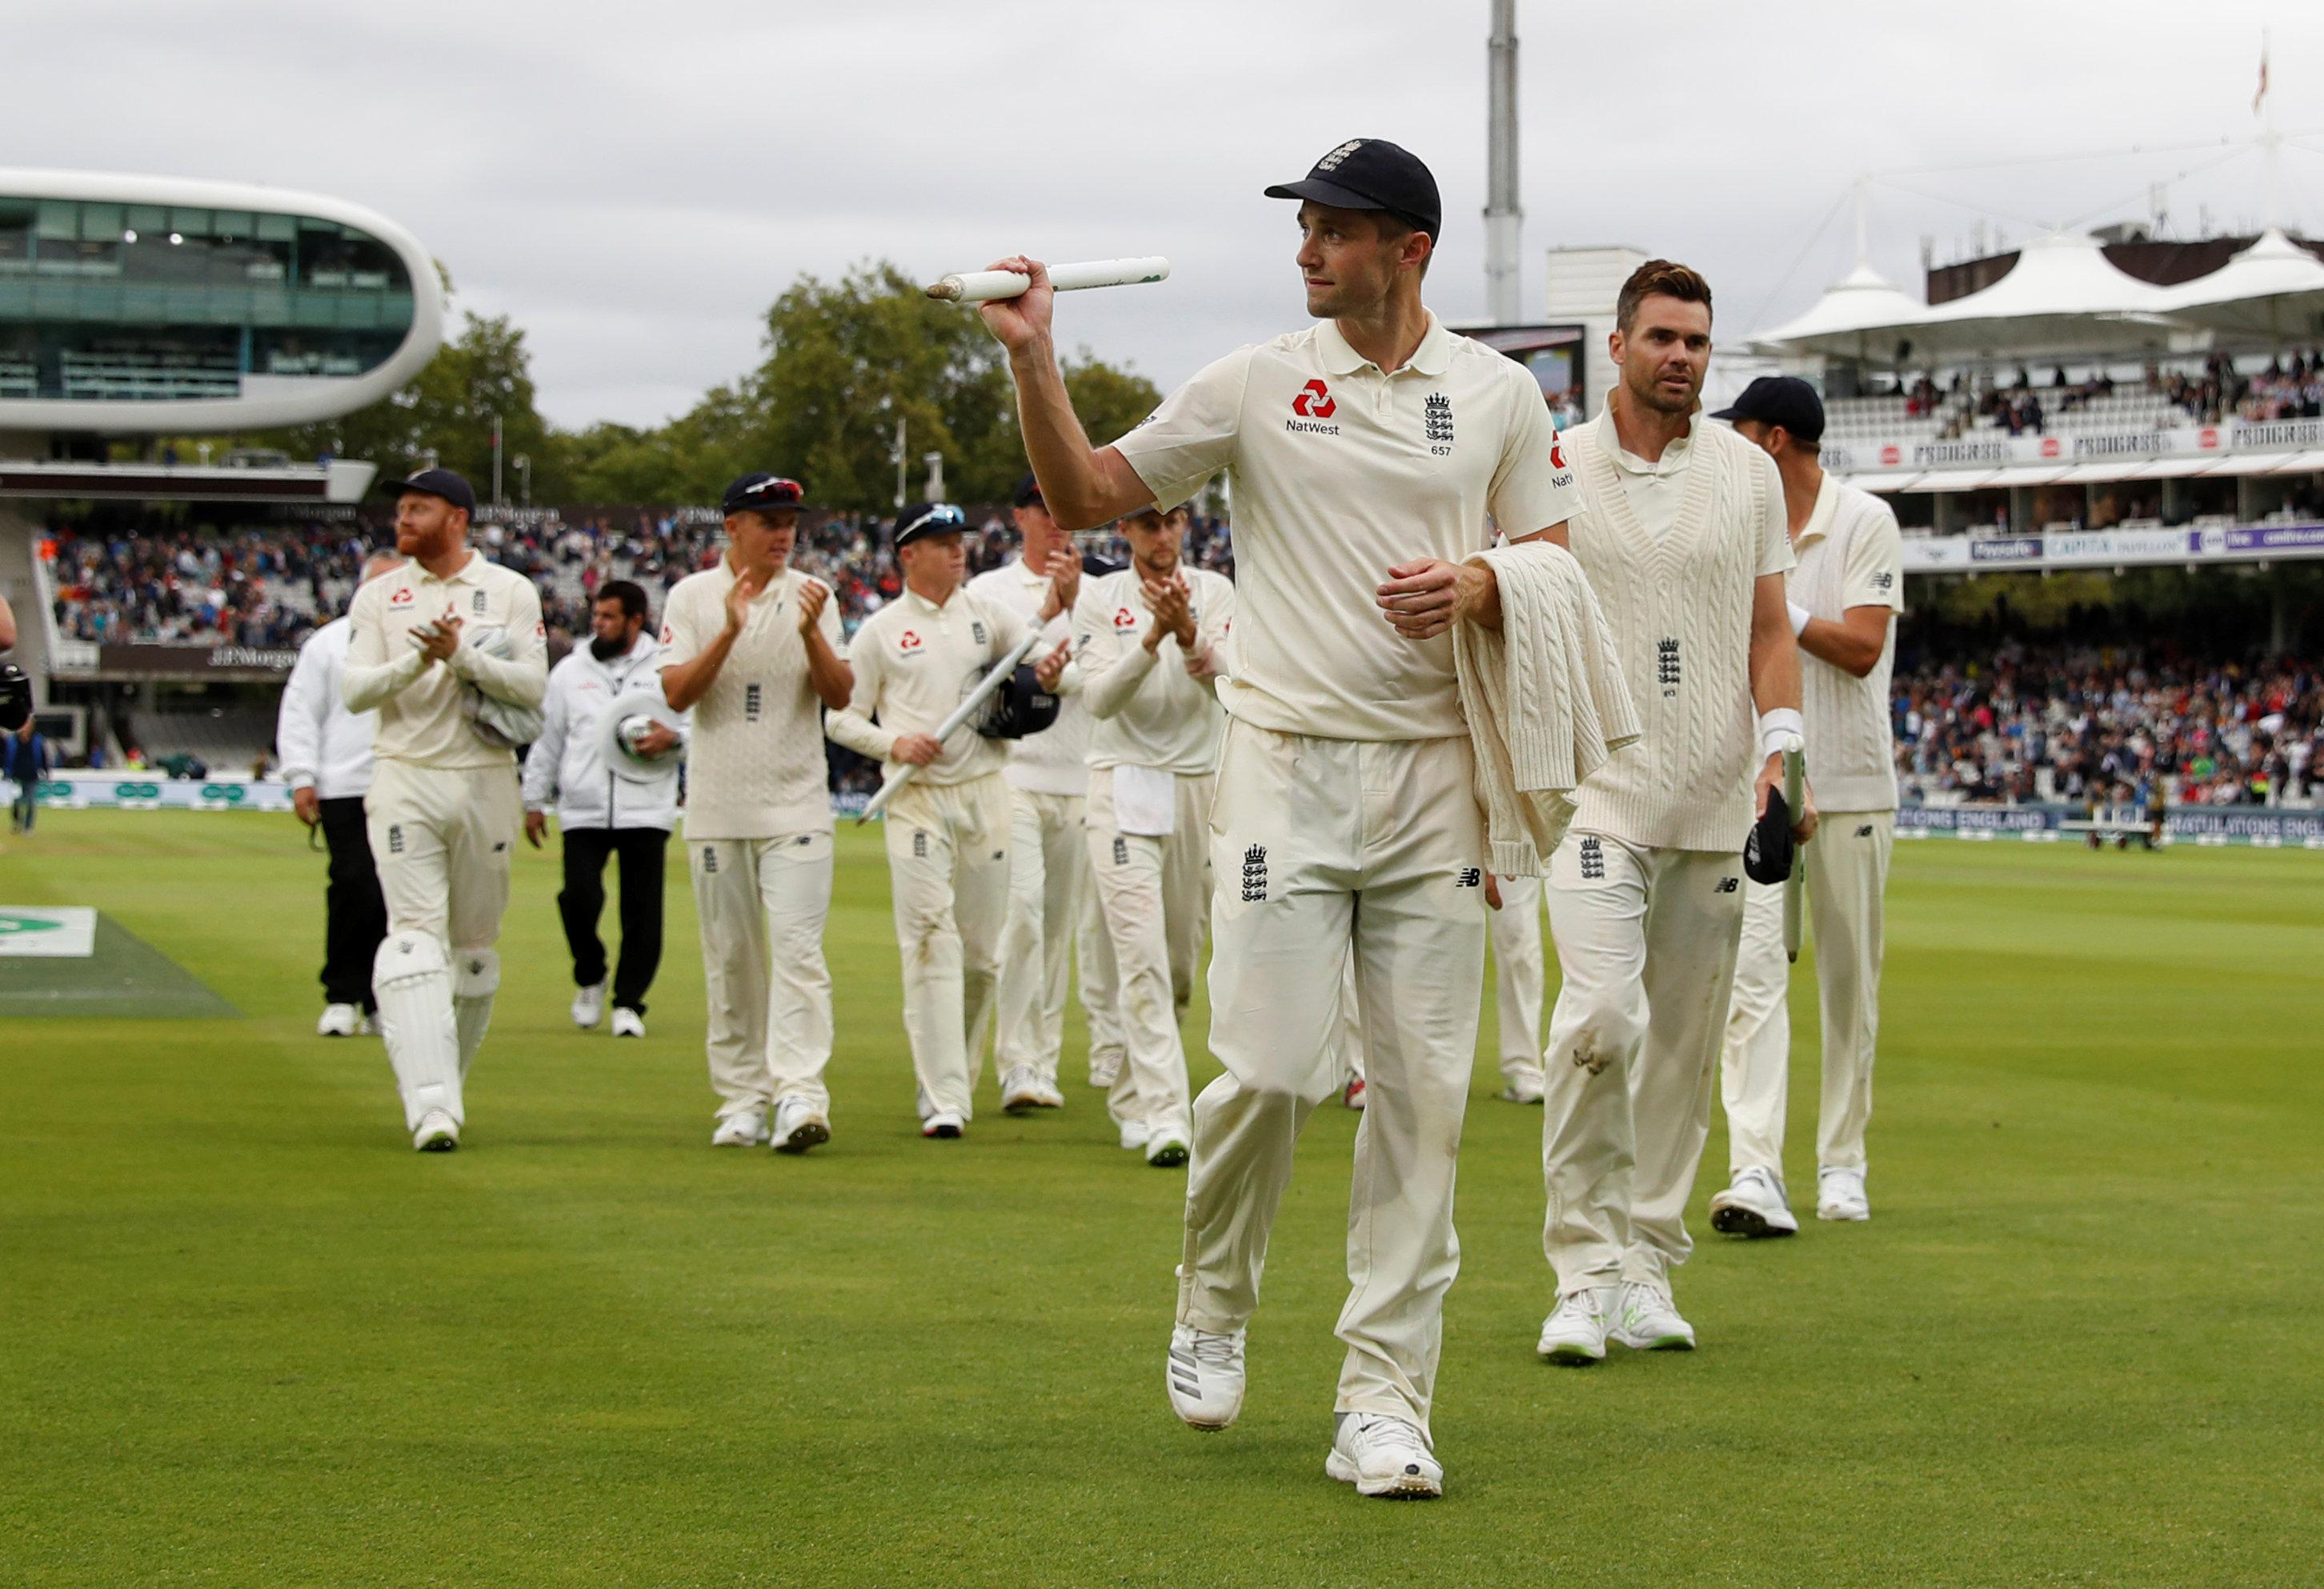 England have named an unchanged squad for Trent Bridge after big Lord's win